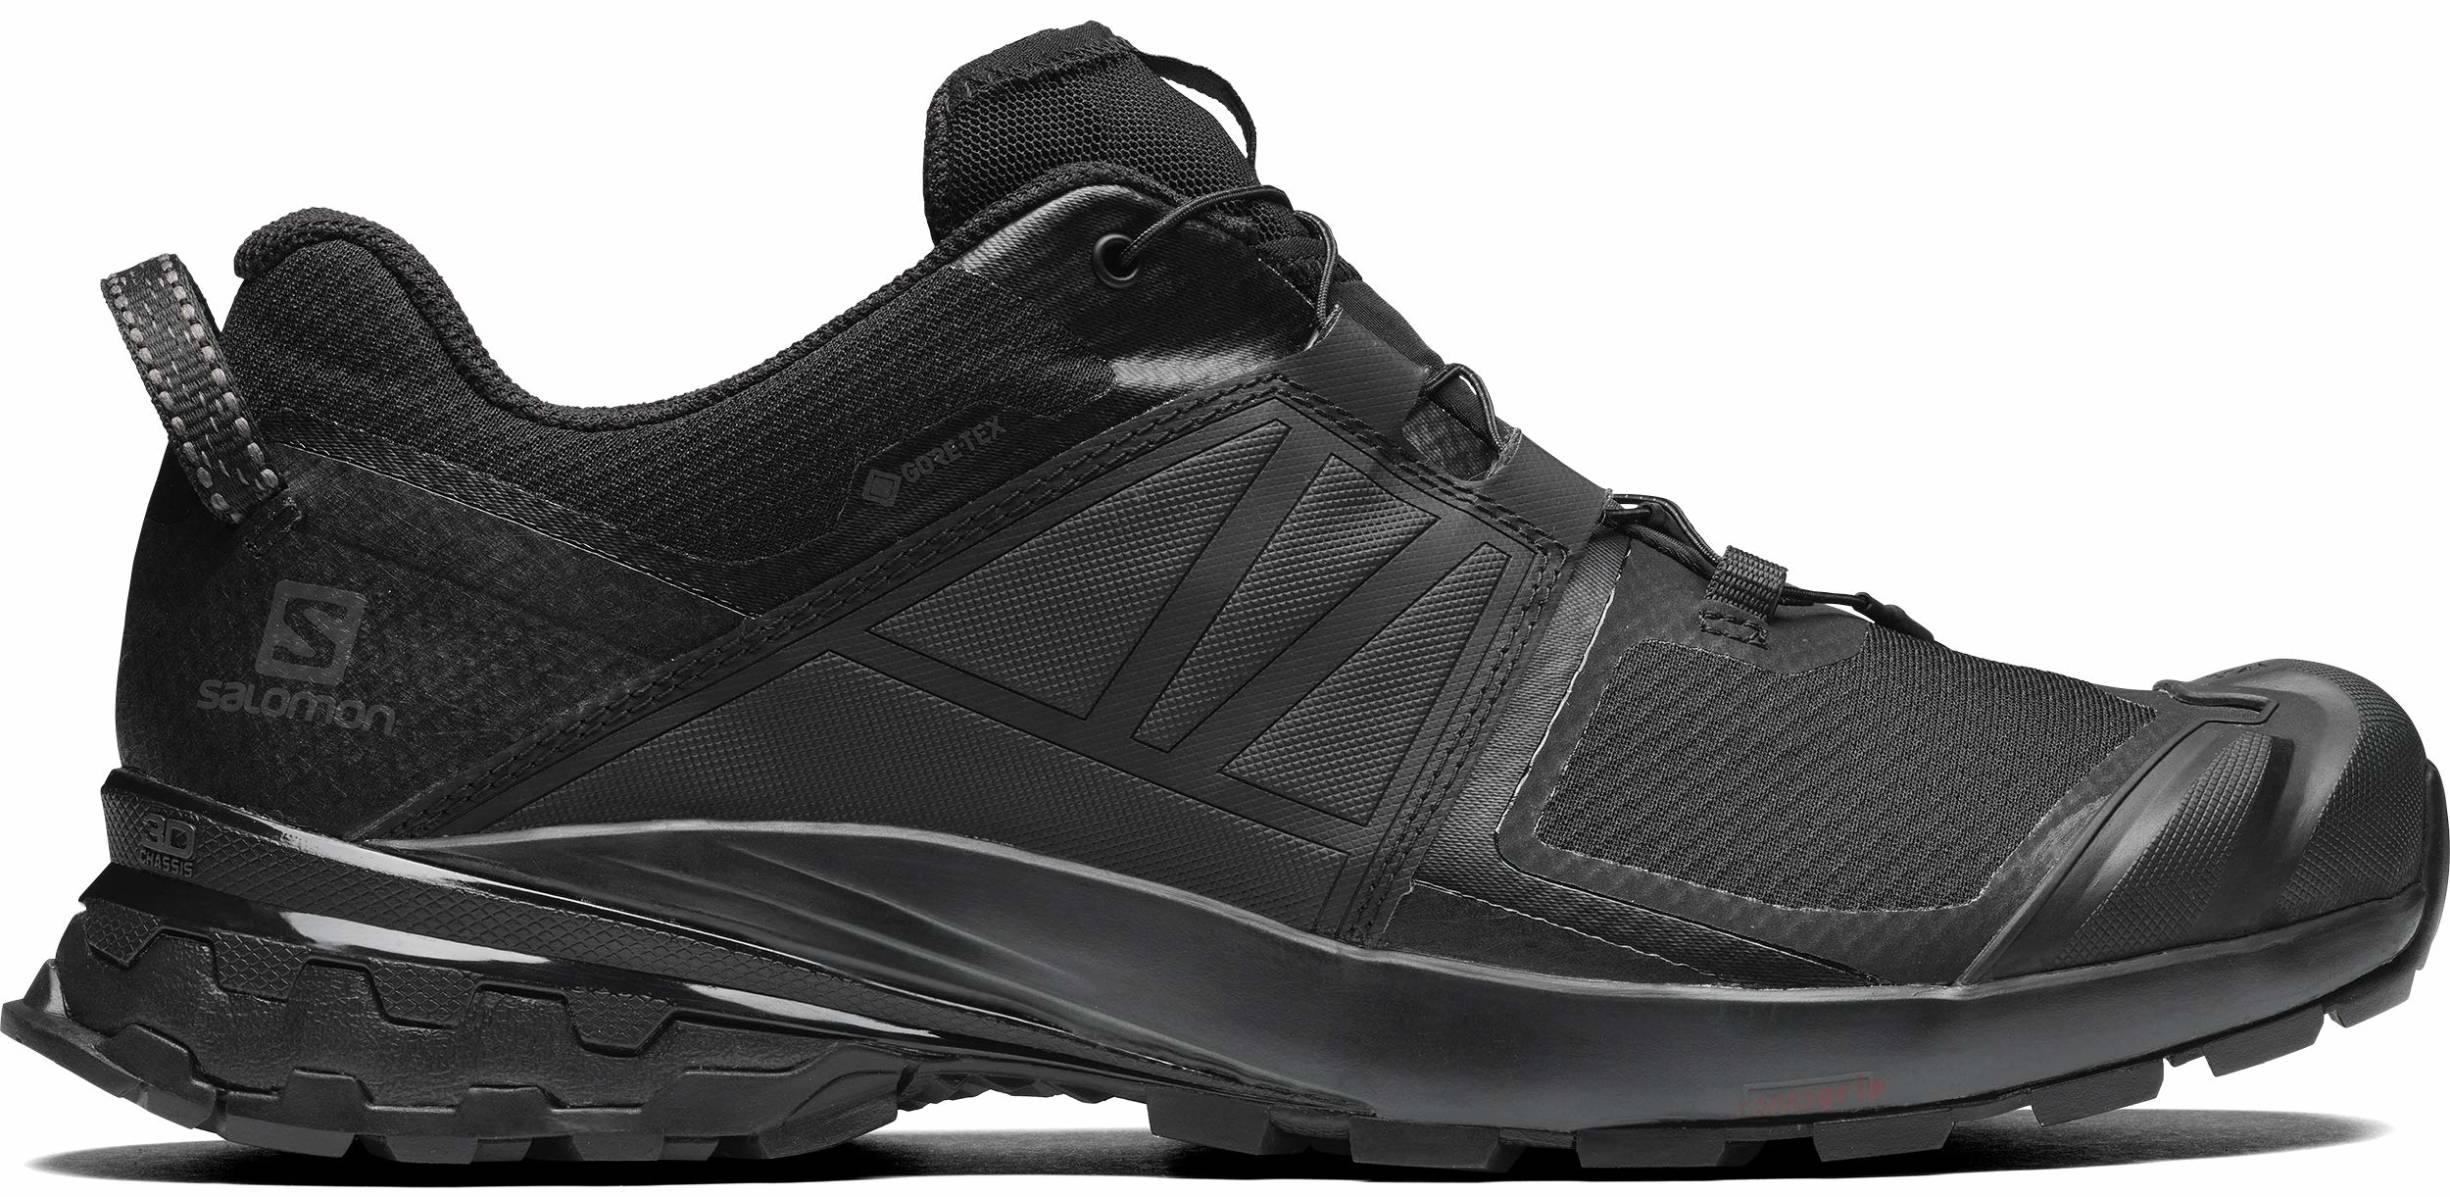 Save 29 On Salomon Trail Running Shoes 84 Models In Stock Runrepeat